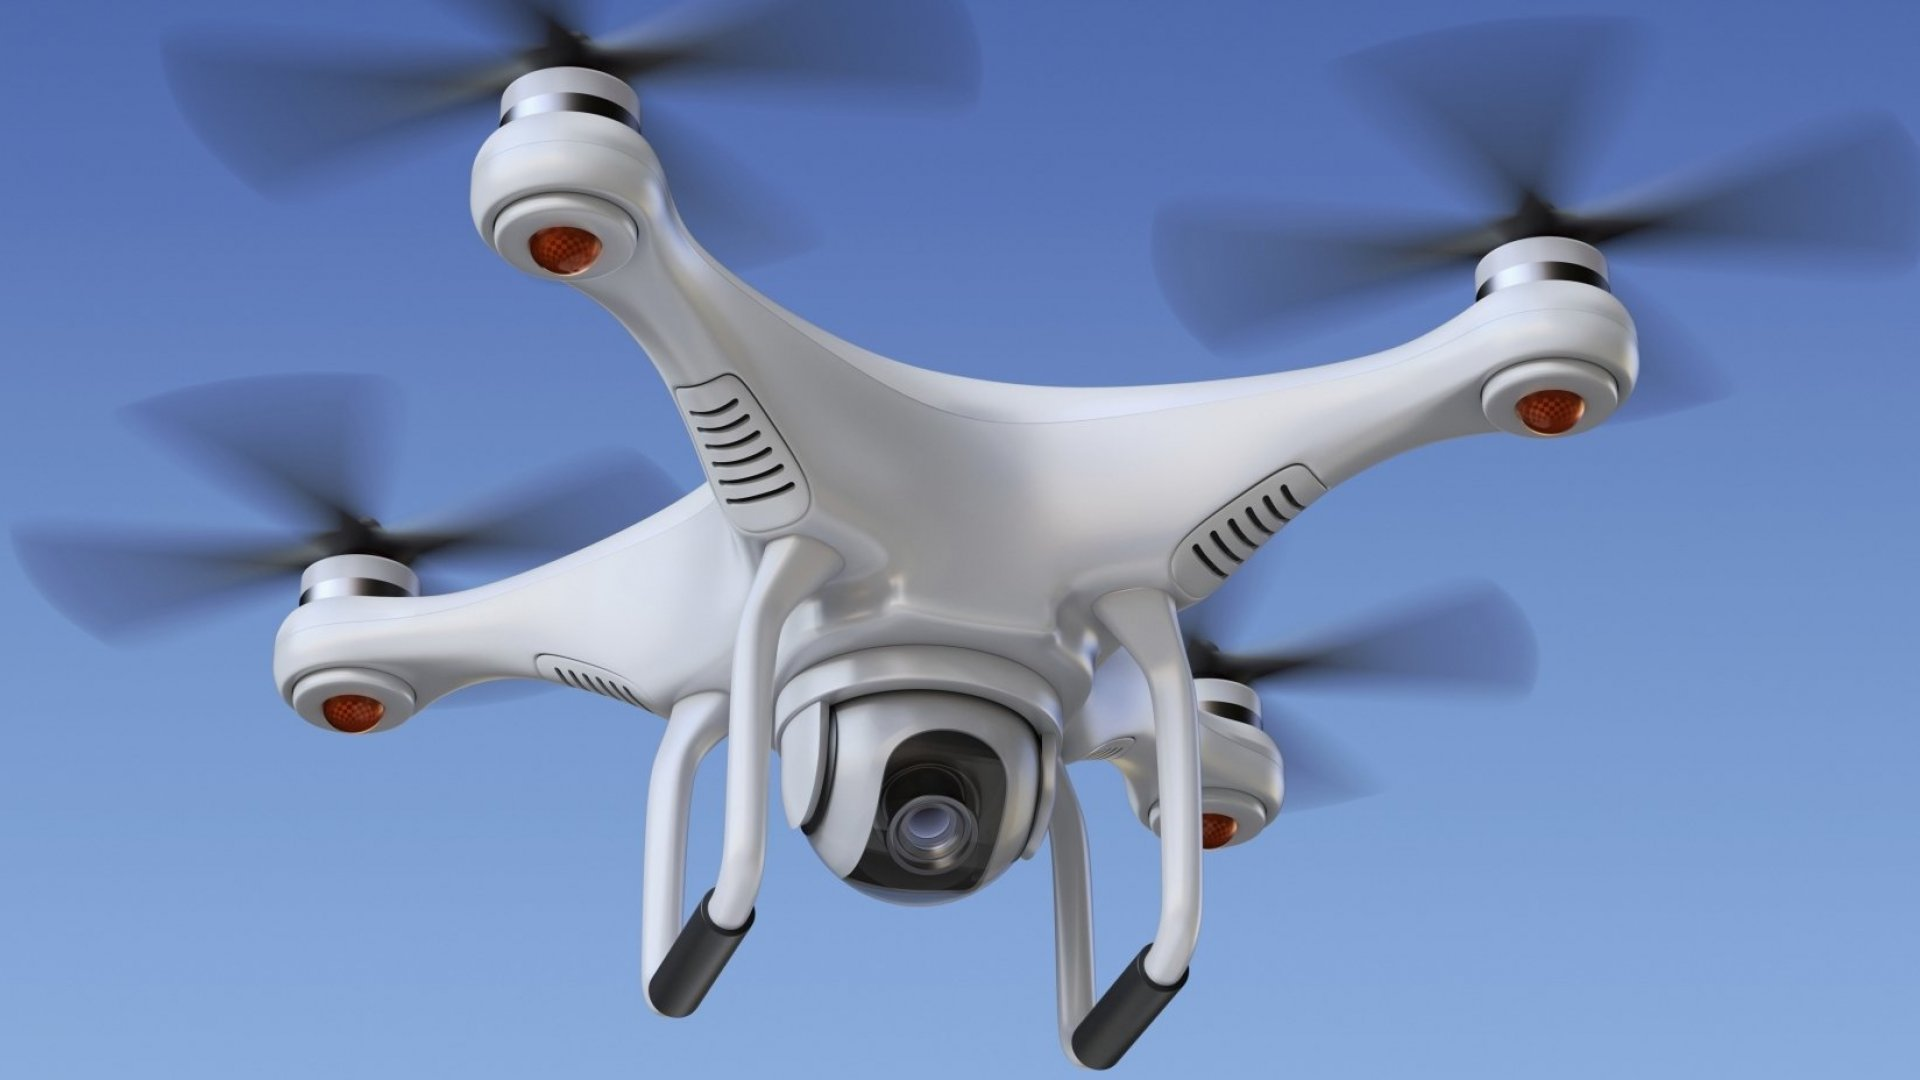 Drones in America Must Now Be Registered. Here's What You Need to Know